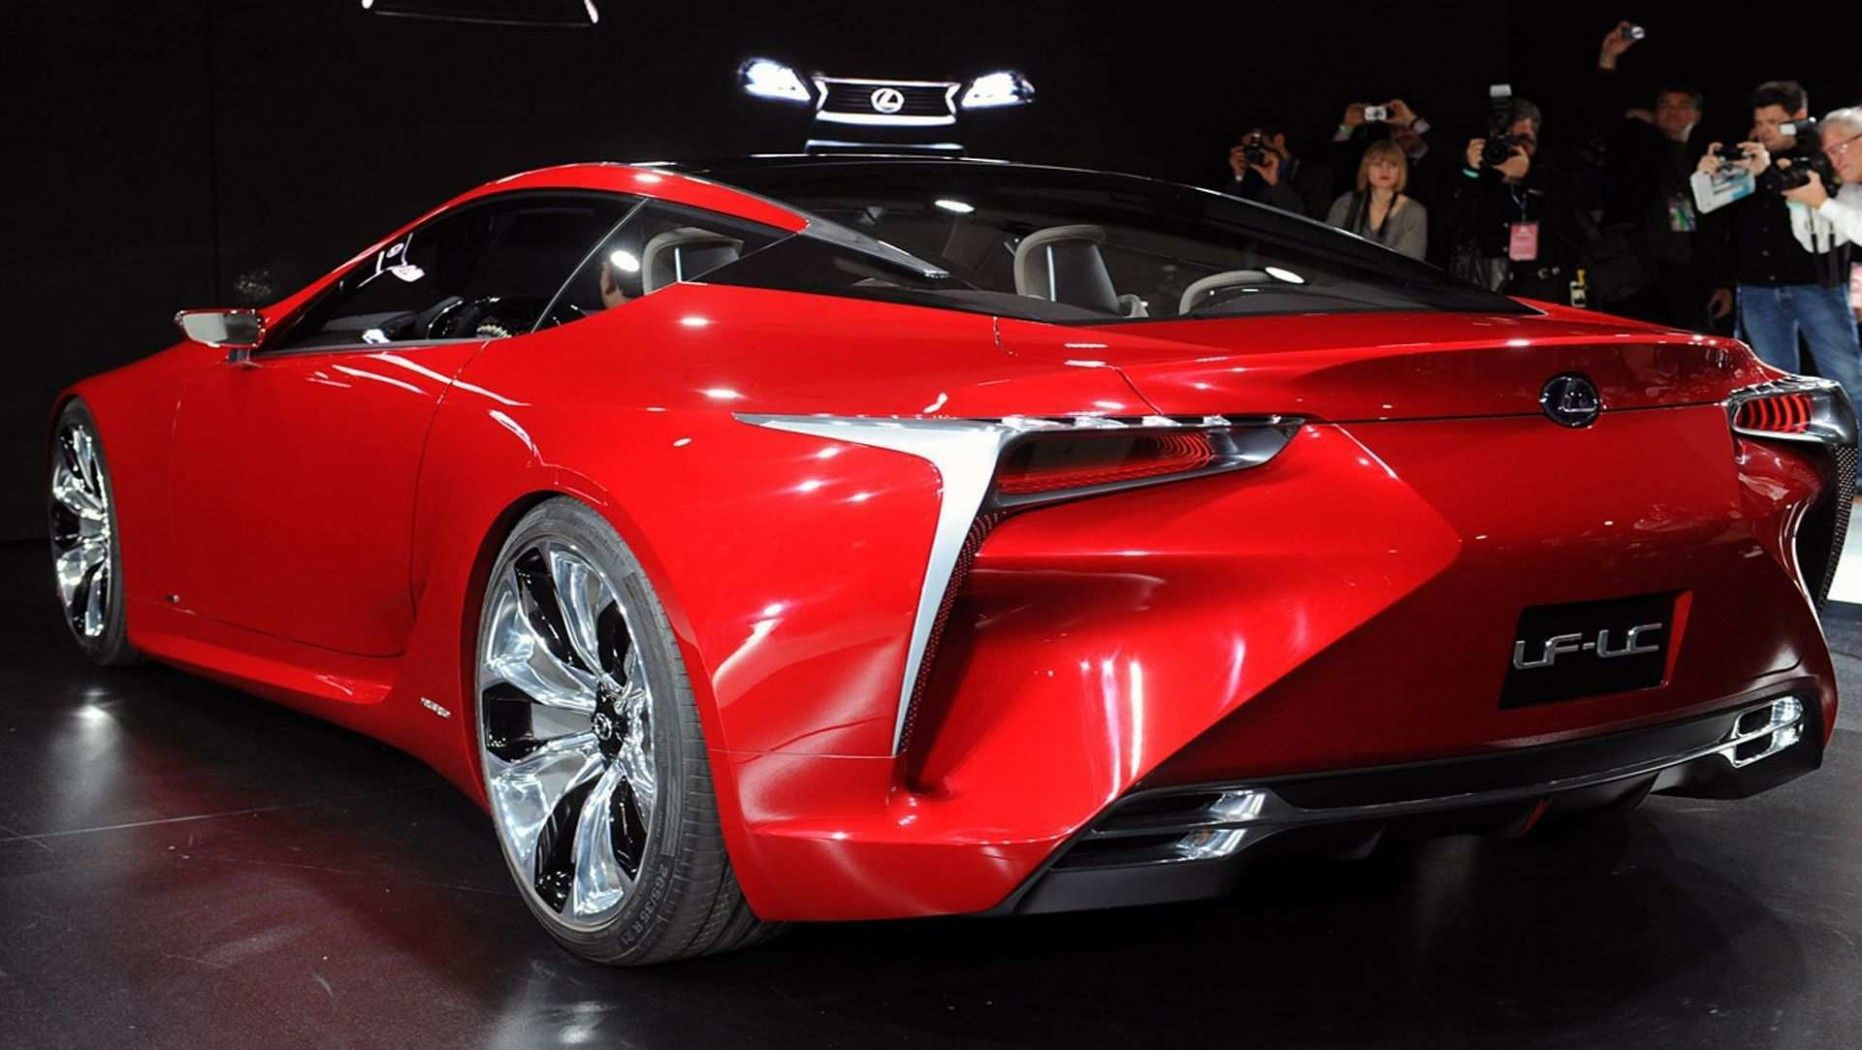 The Truth About Lexus Sports Car 2020 Design Is About To Be Revealed